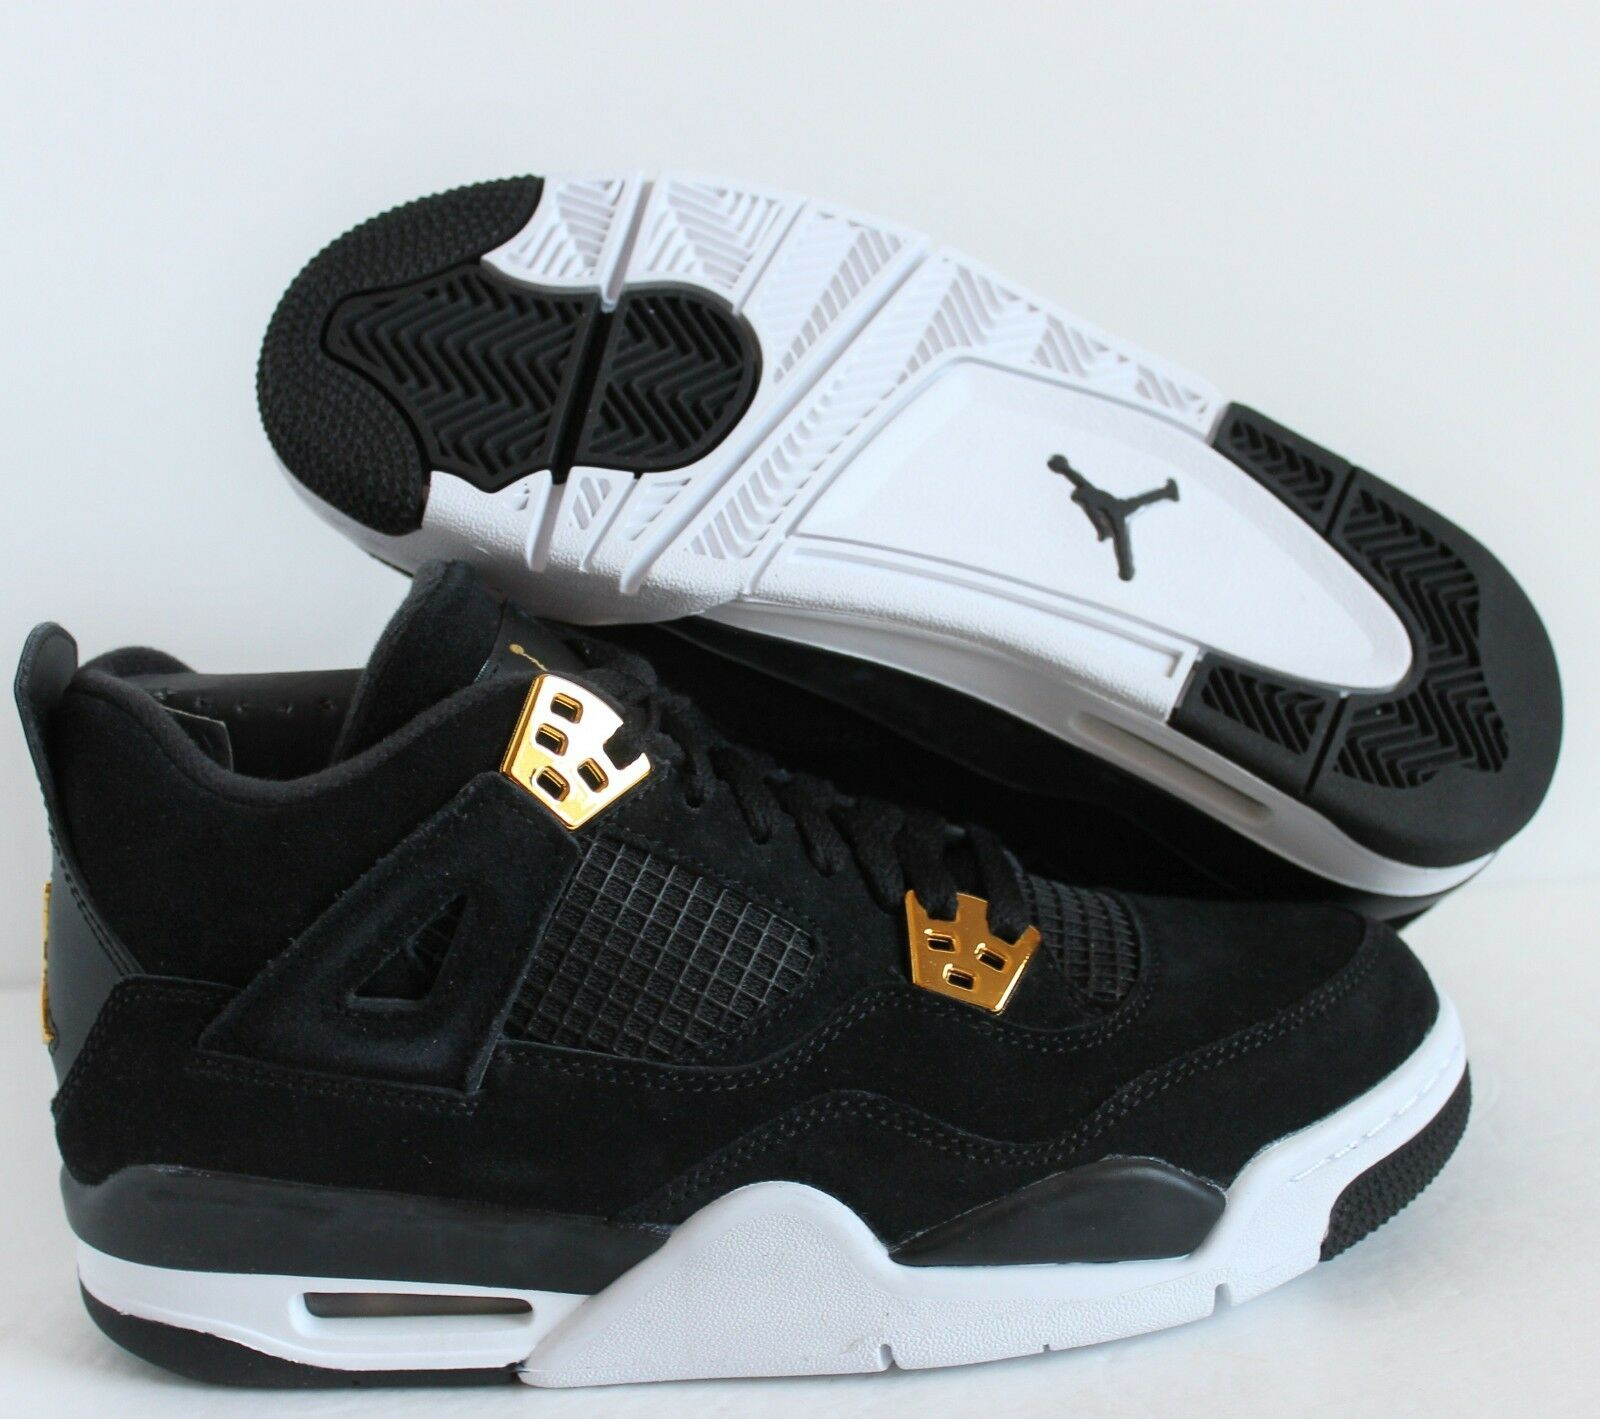 NIKE AIR JORDAN 4 RETRO BG  noir -GOLD ROYALTY SZ 5.5Y-femmes  SZ 7 [408452-032]